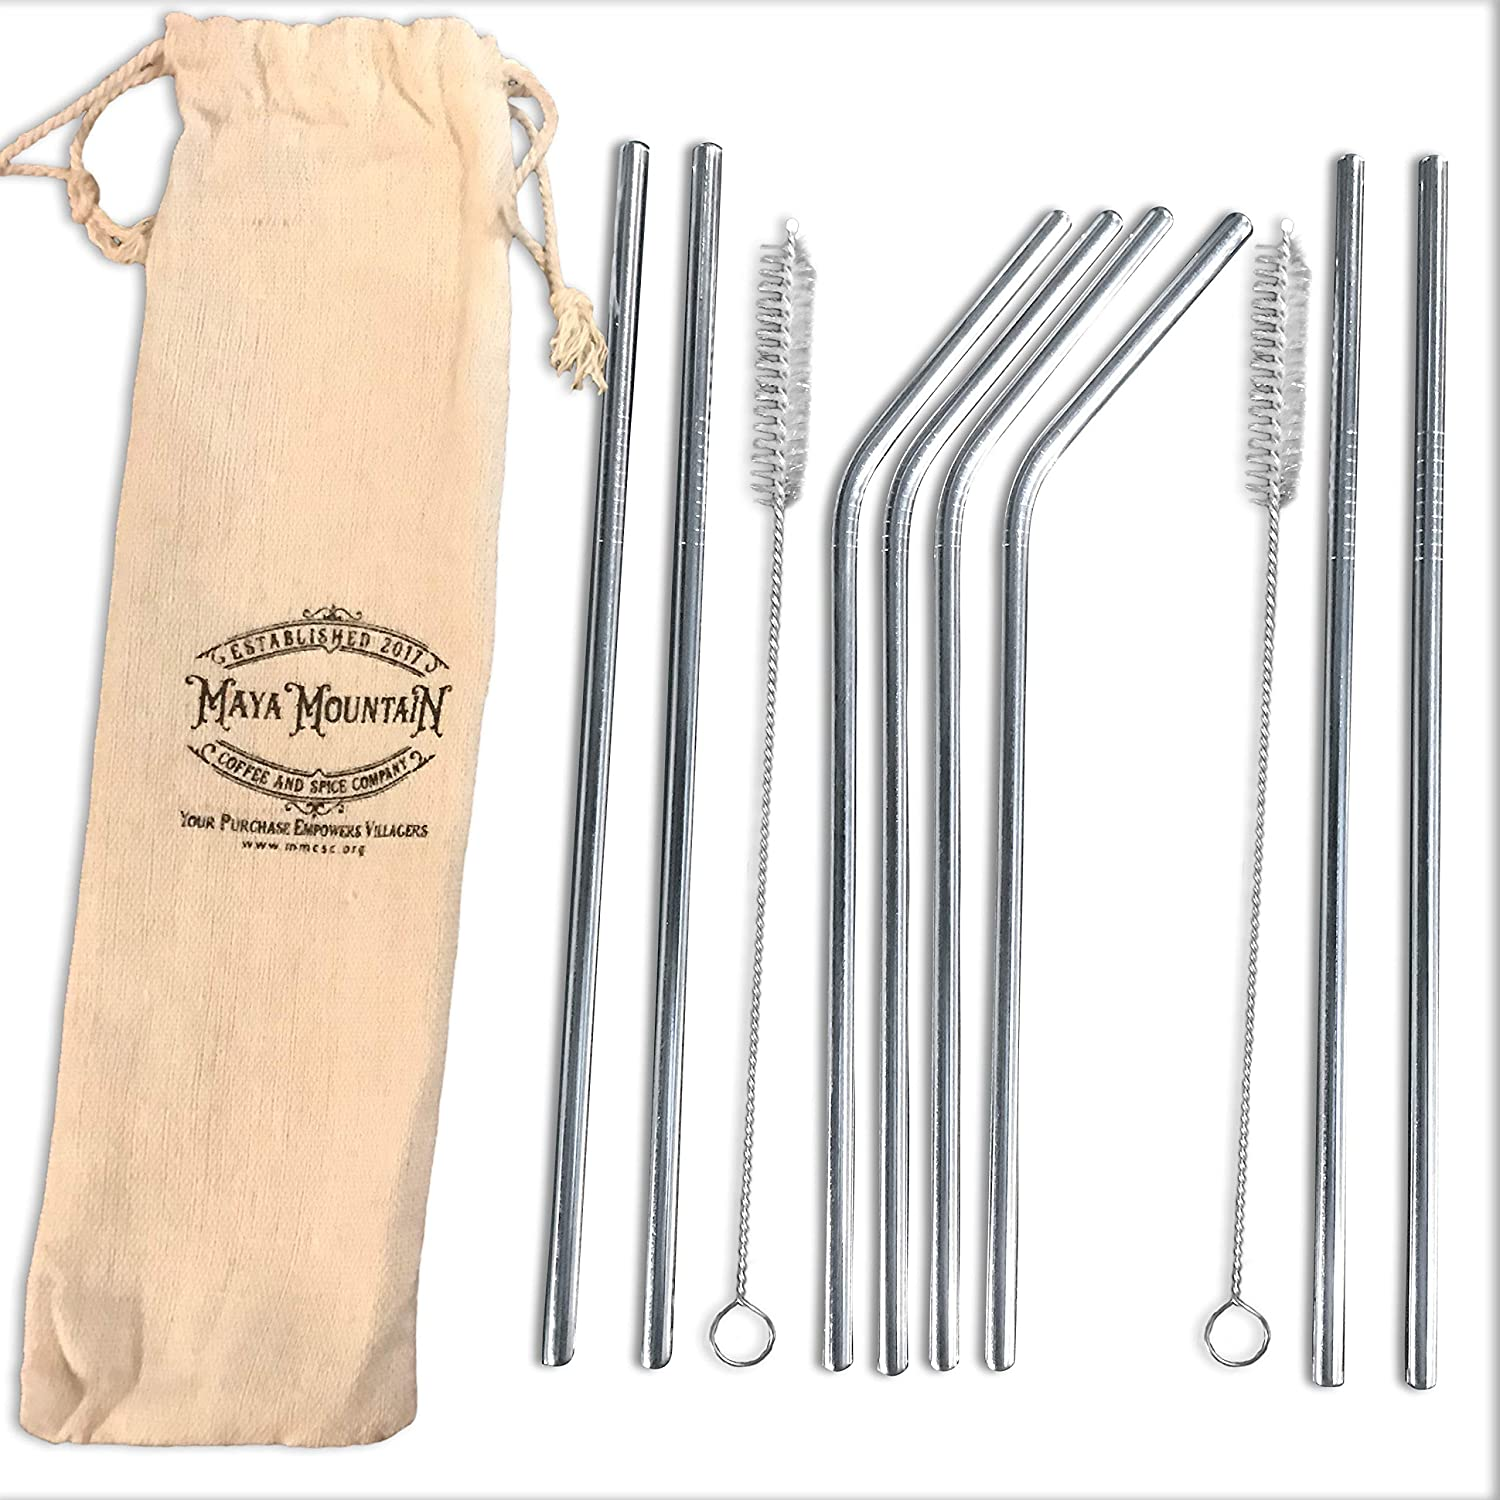 "Reusable Straws, Stainless Steel, 8 Pack, 8.5"" - 4 Straight, 4 Bent Metal Drinking Straw Set with Case​ and Cleaning Brush - Eco-Friendly, BPA-Free, Rust-Proof, Easy Sip and Clean Drink Utensils 8.5"" - 4 Straight"